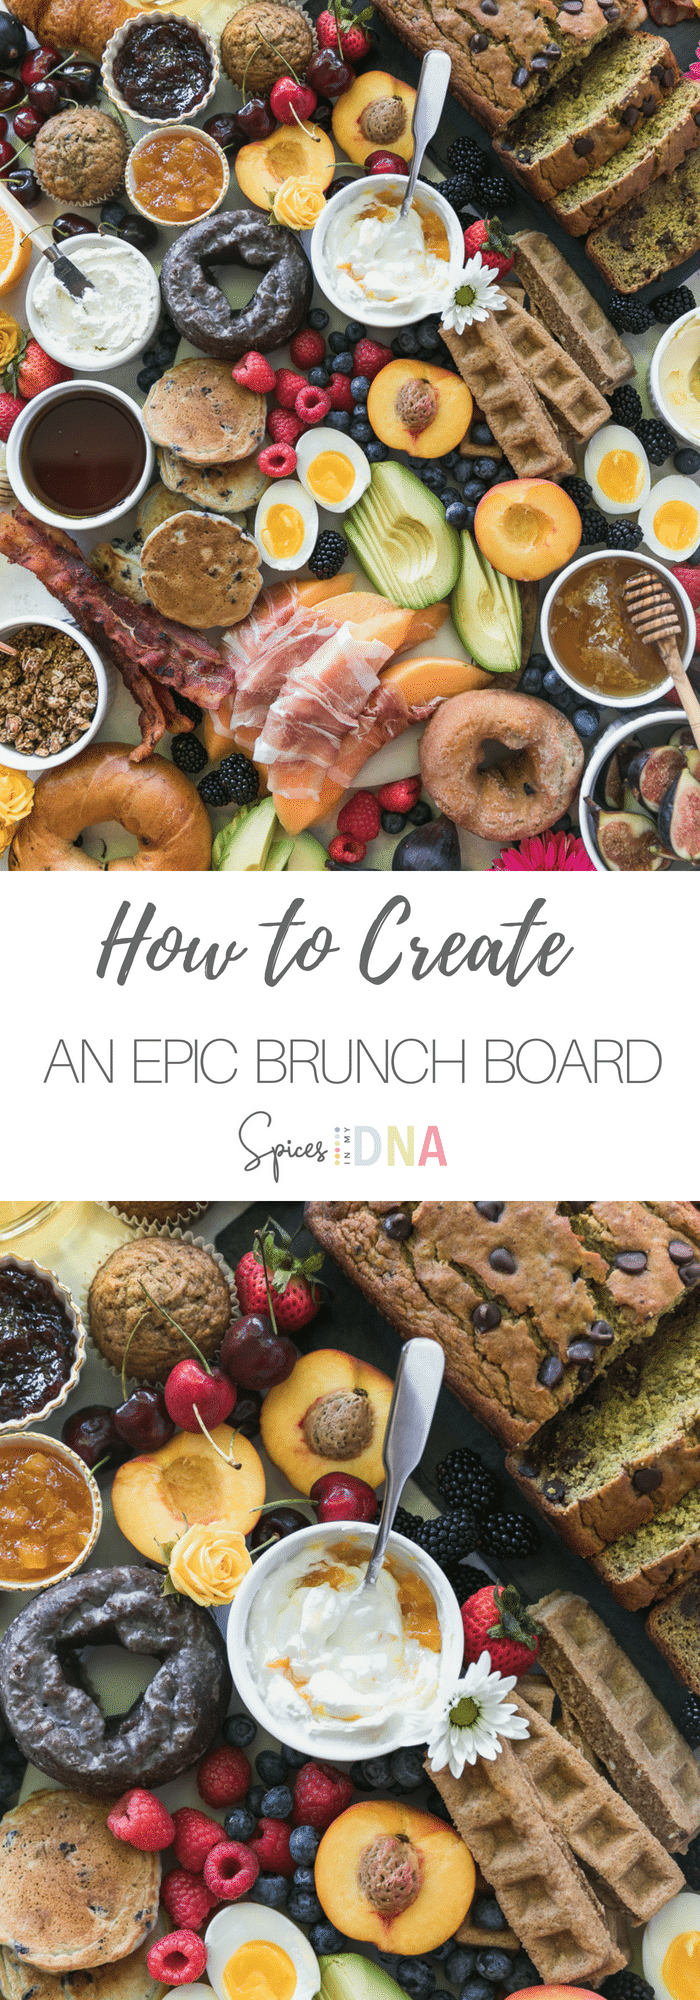 This is exactly how I create the most Epic Brunch Board using all of my favorite breakfast and brunch treats! We've got doughnuts, muffins, chocolate chip banana bread, fruit, mini pancakes, waffle sticks, yogurt, prosciutto wrapped melon, avocado, soft boiled eggs, bacon, granola, and bagels! You can truly add anything your heart desires, and they're so much fun to make and serve at a party! #brunch #entertaining #breakfast